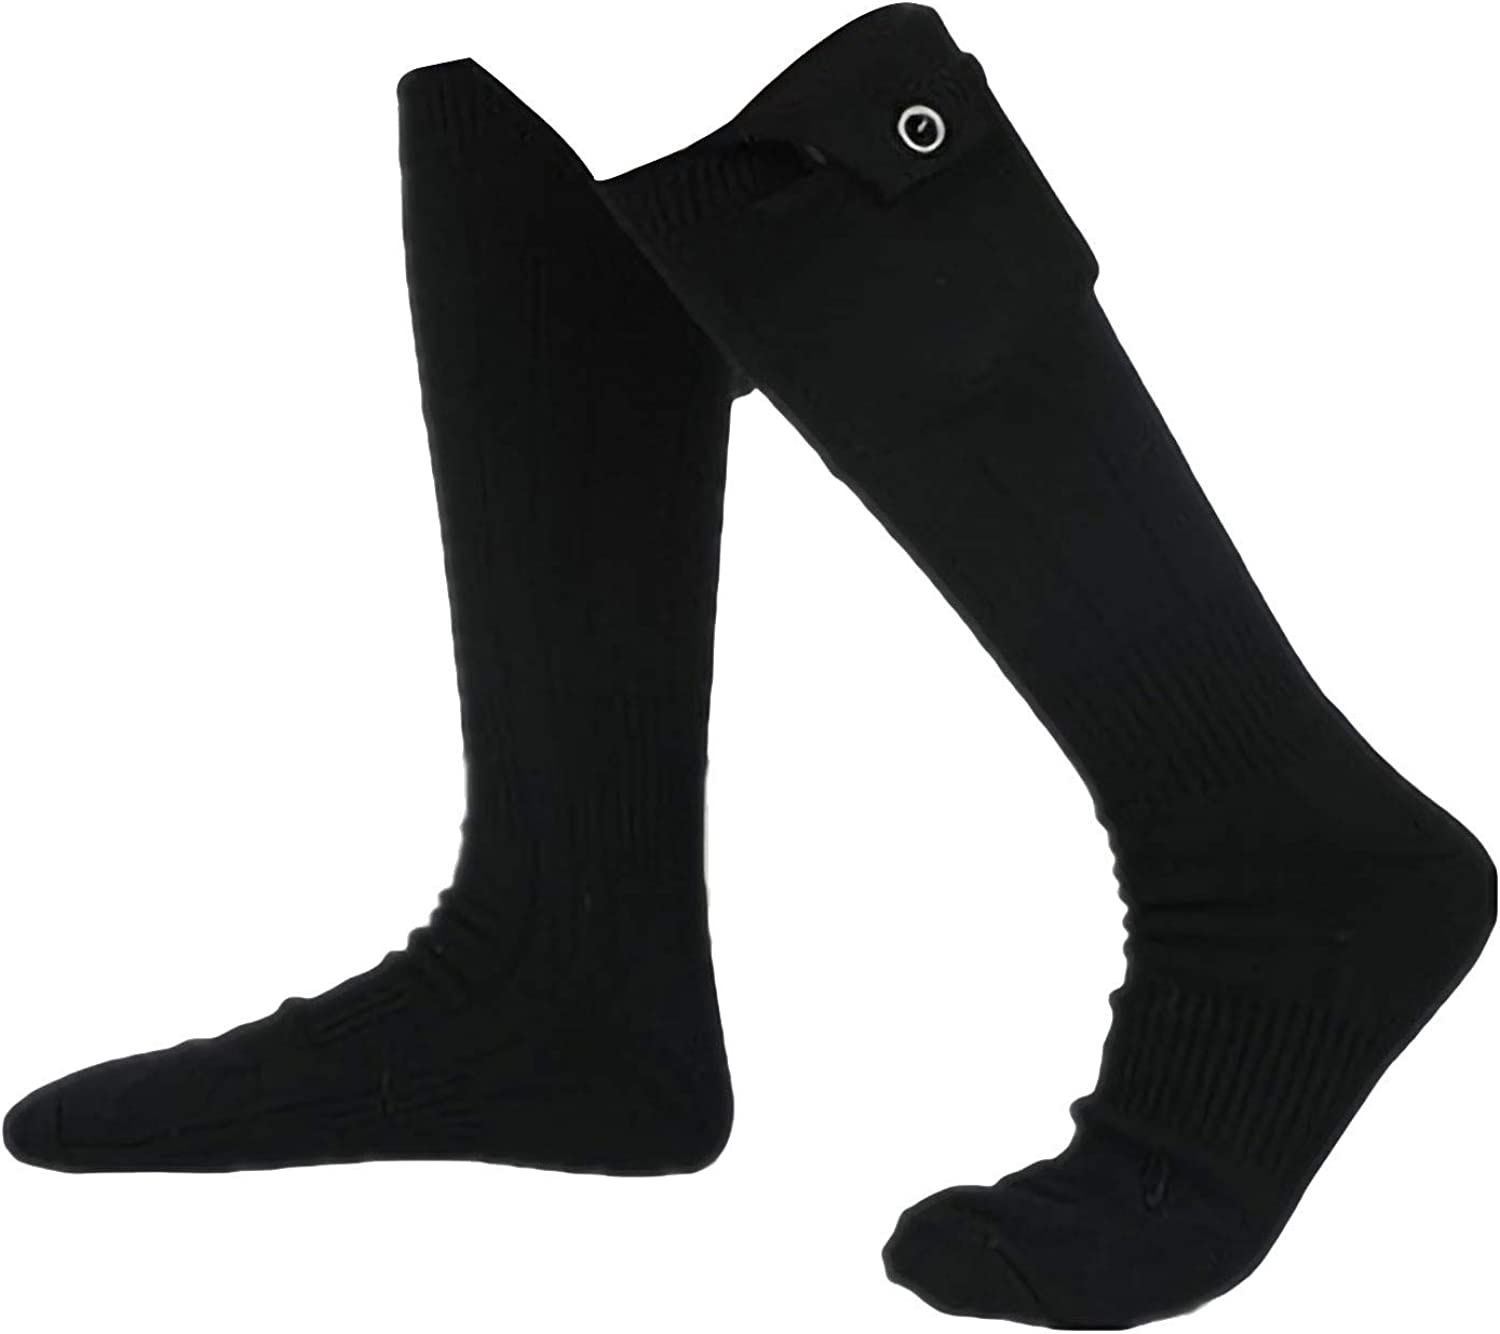 Indoor Outdoor Daily New Orleans Mall Socks NEW before selling ☆ Annular Heating He Charging USB